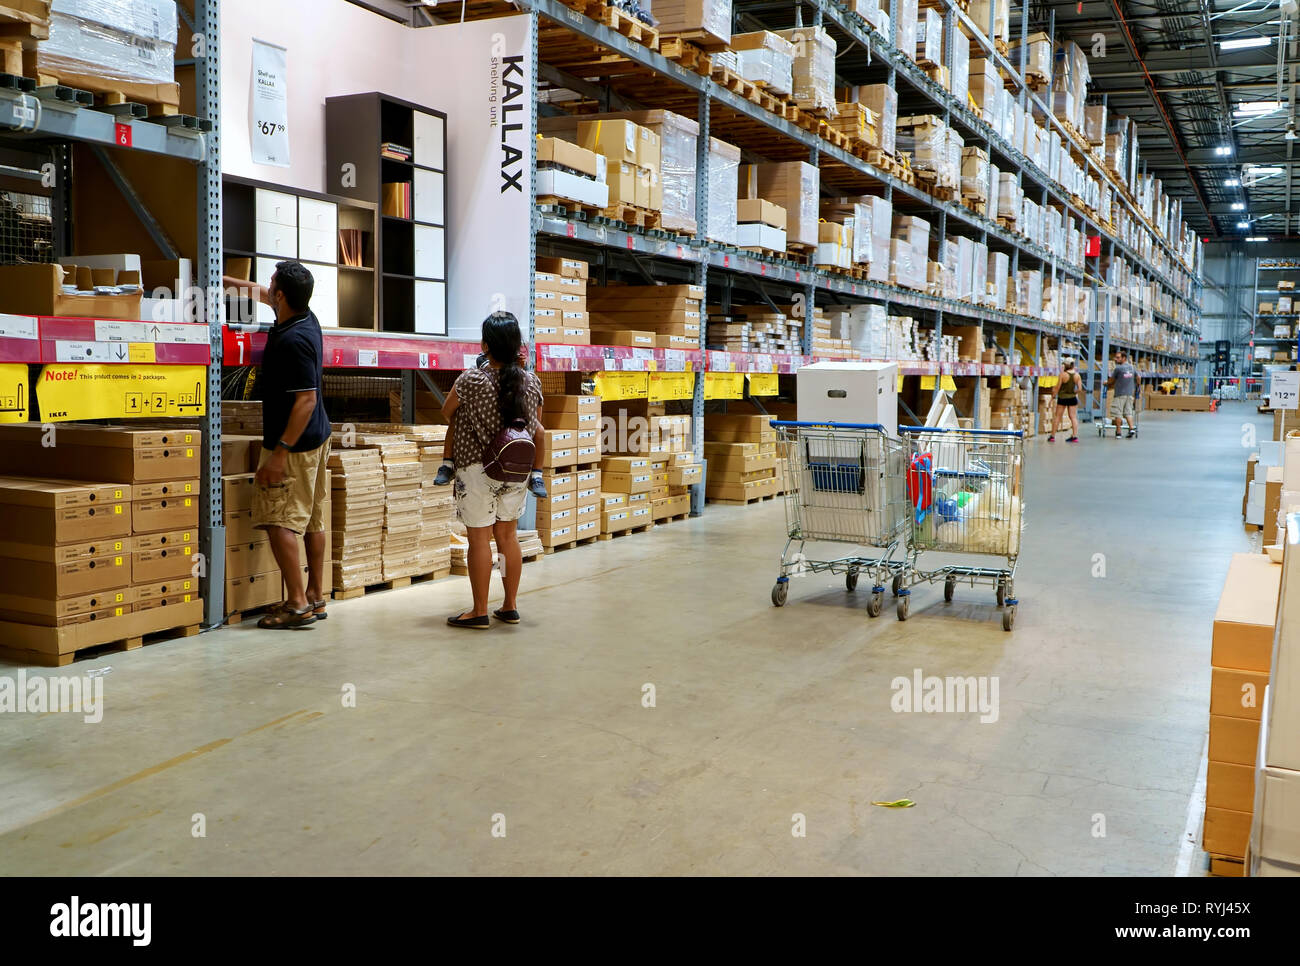 Home Decor Store High Resolution Stock Photography And Images Alamy